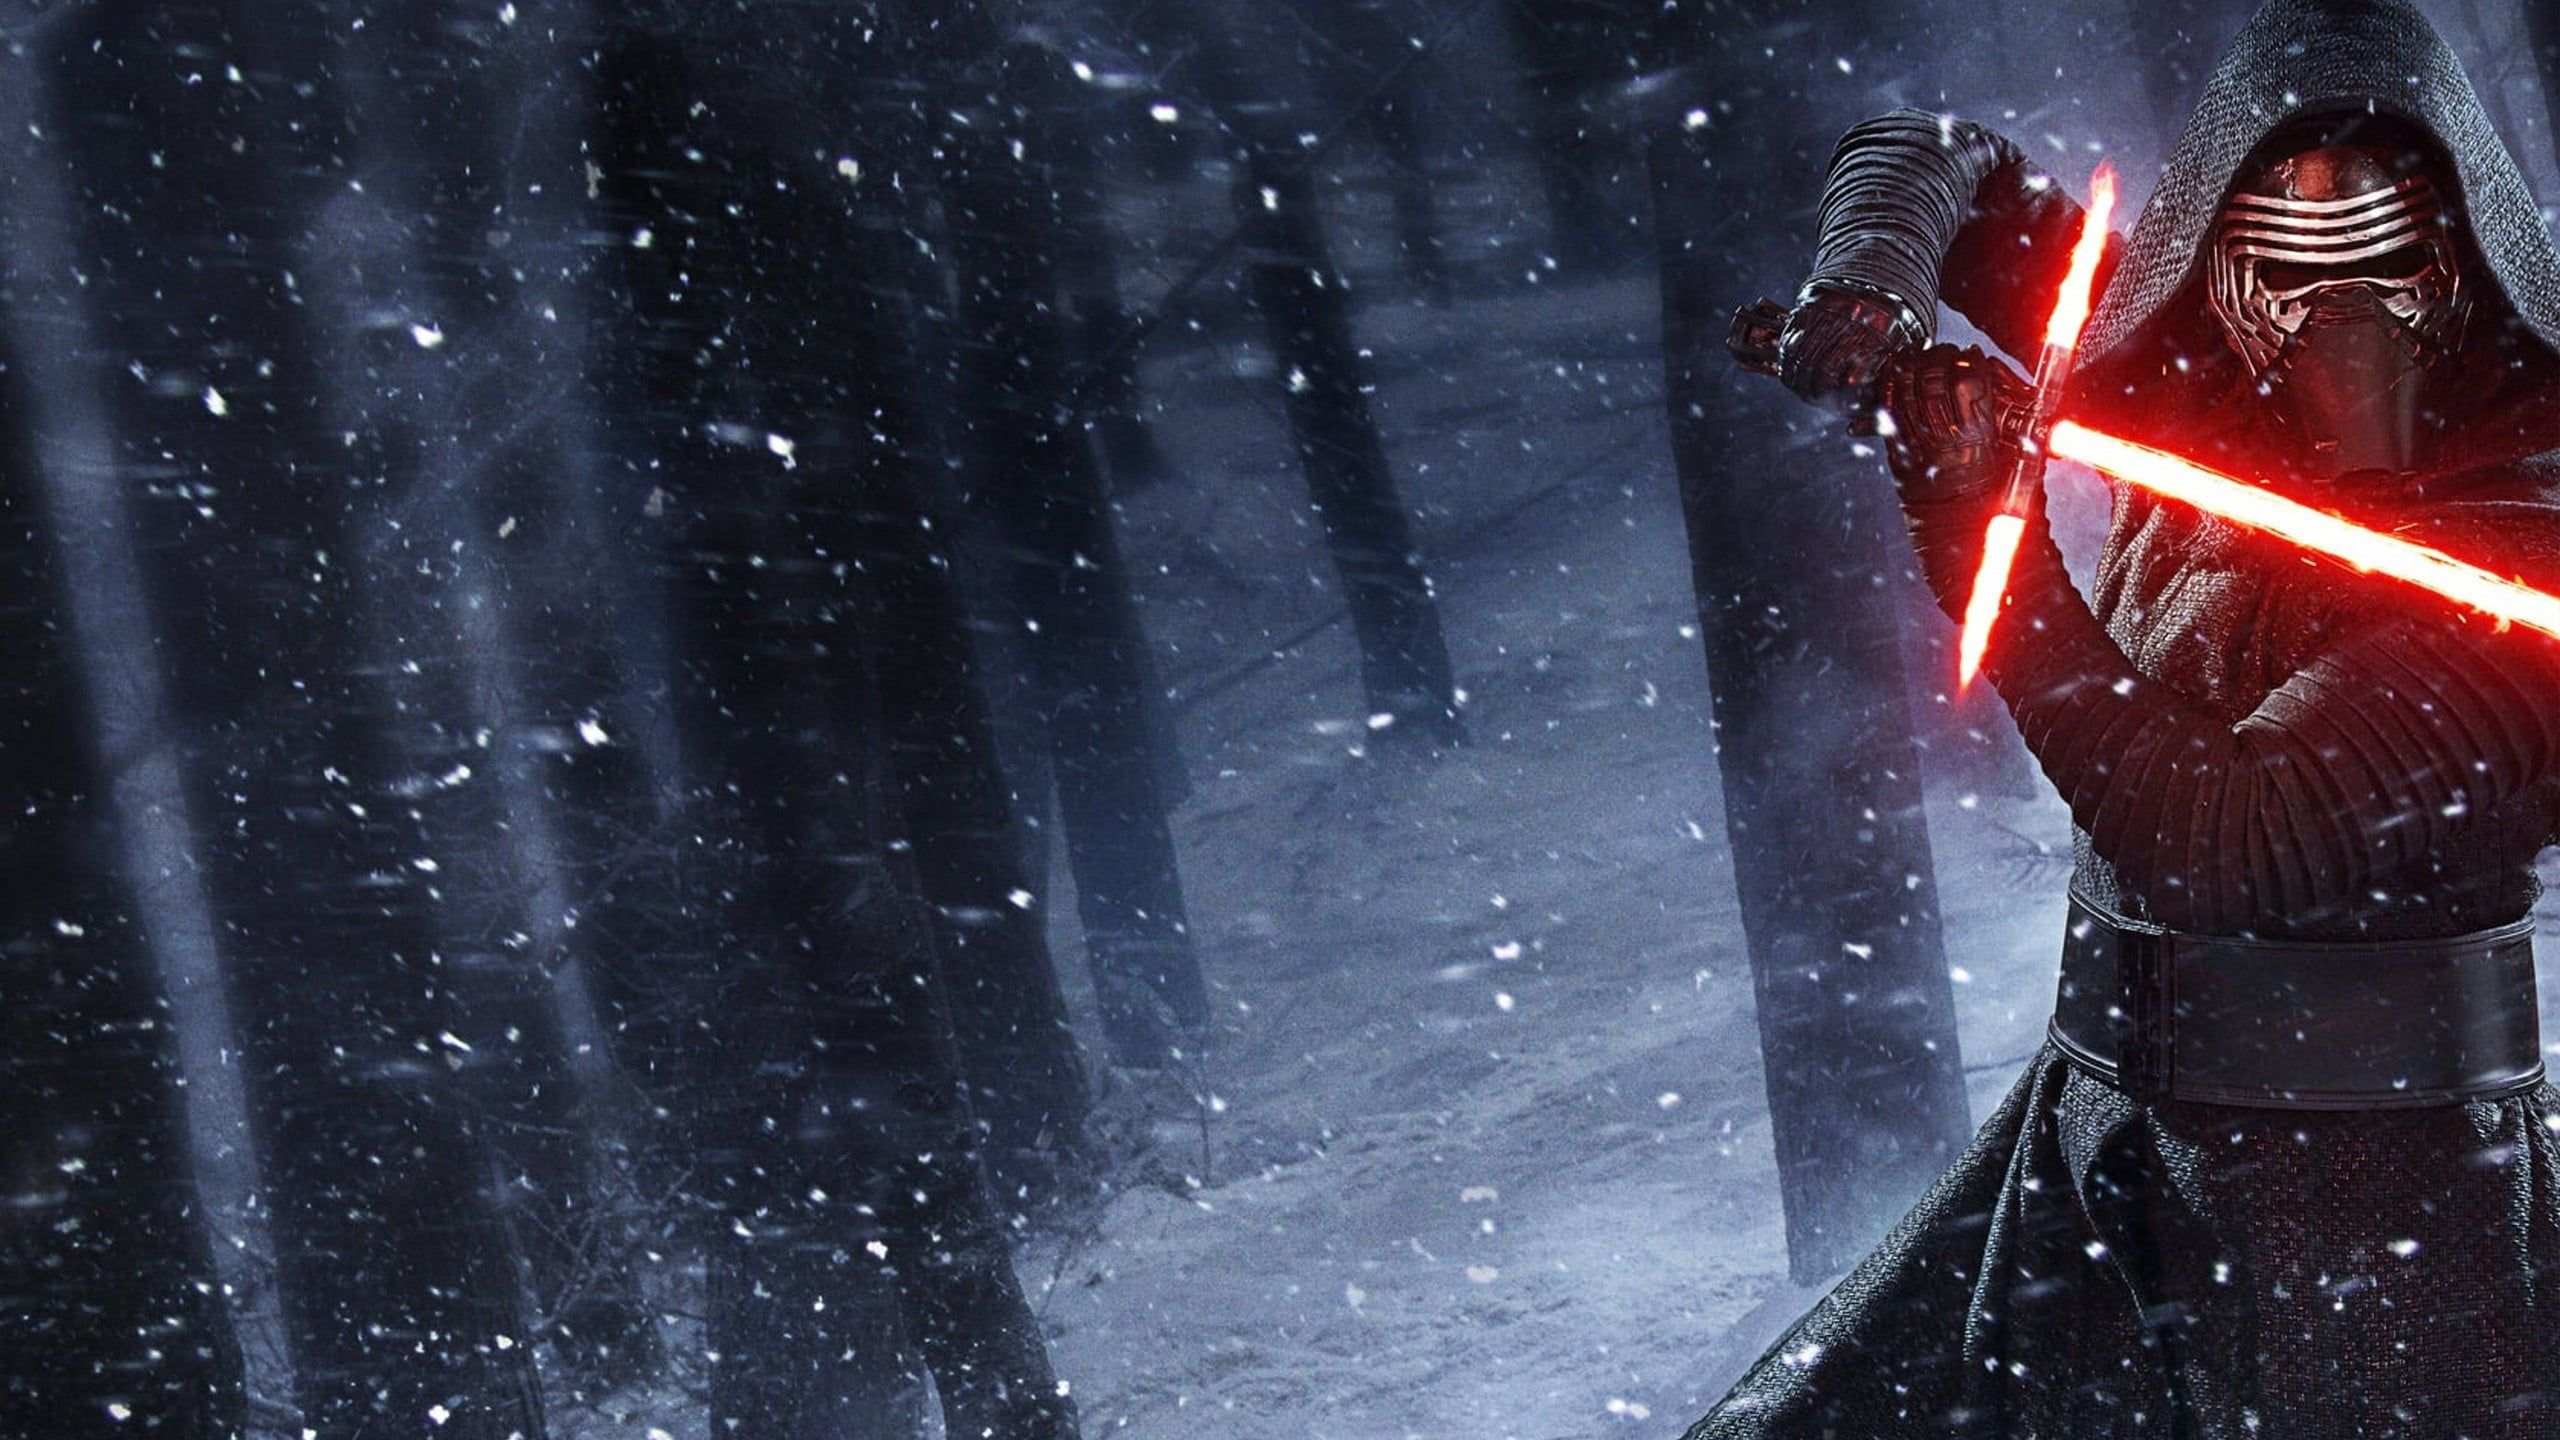 6000 X 4800 Star Wars Resolution Wallpapers Top Free 6000 X 4800 Star Wars Resolution Backgrounds Wallpaperaccess